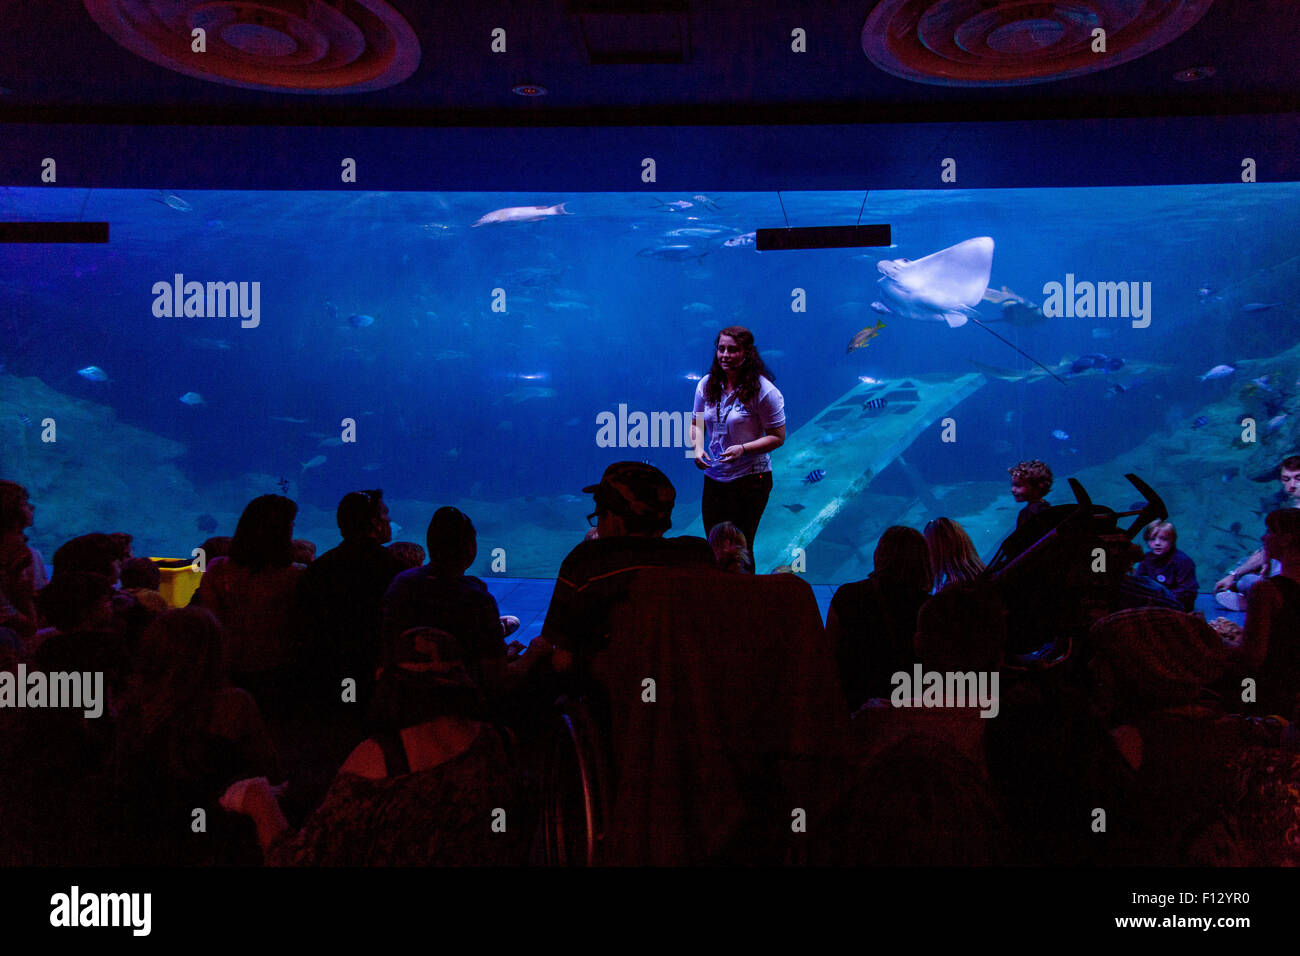 National marine aquarium, Plymouth, Devon, England, United Kingdom. - Stock Image